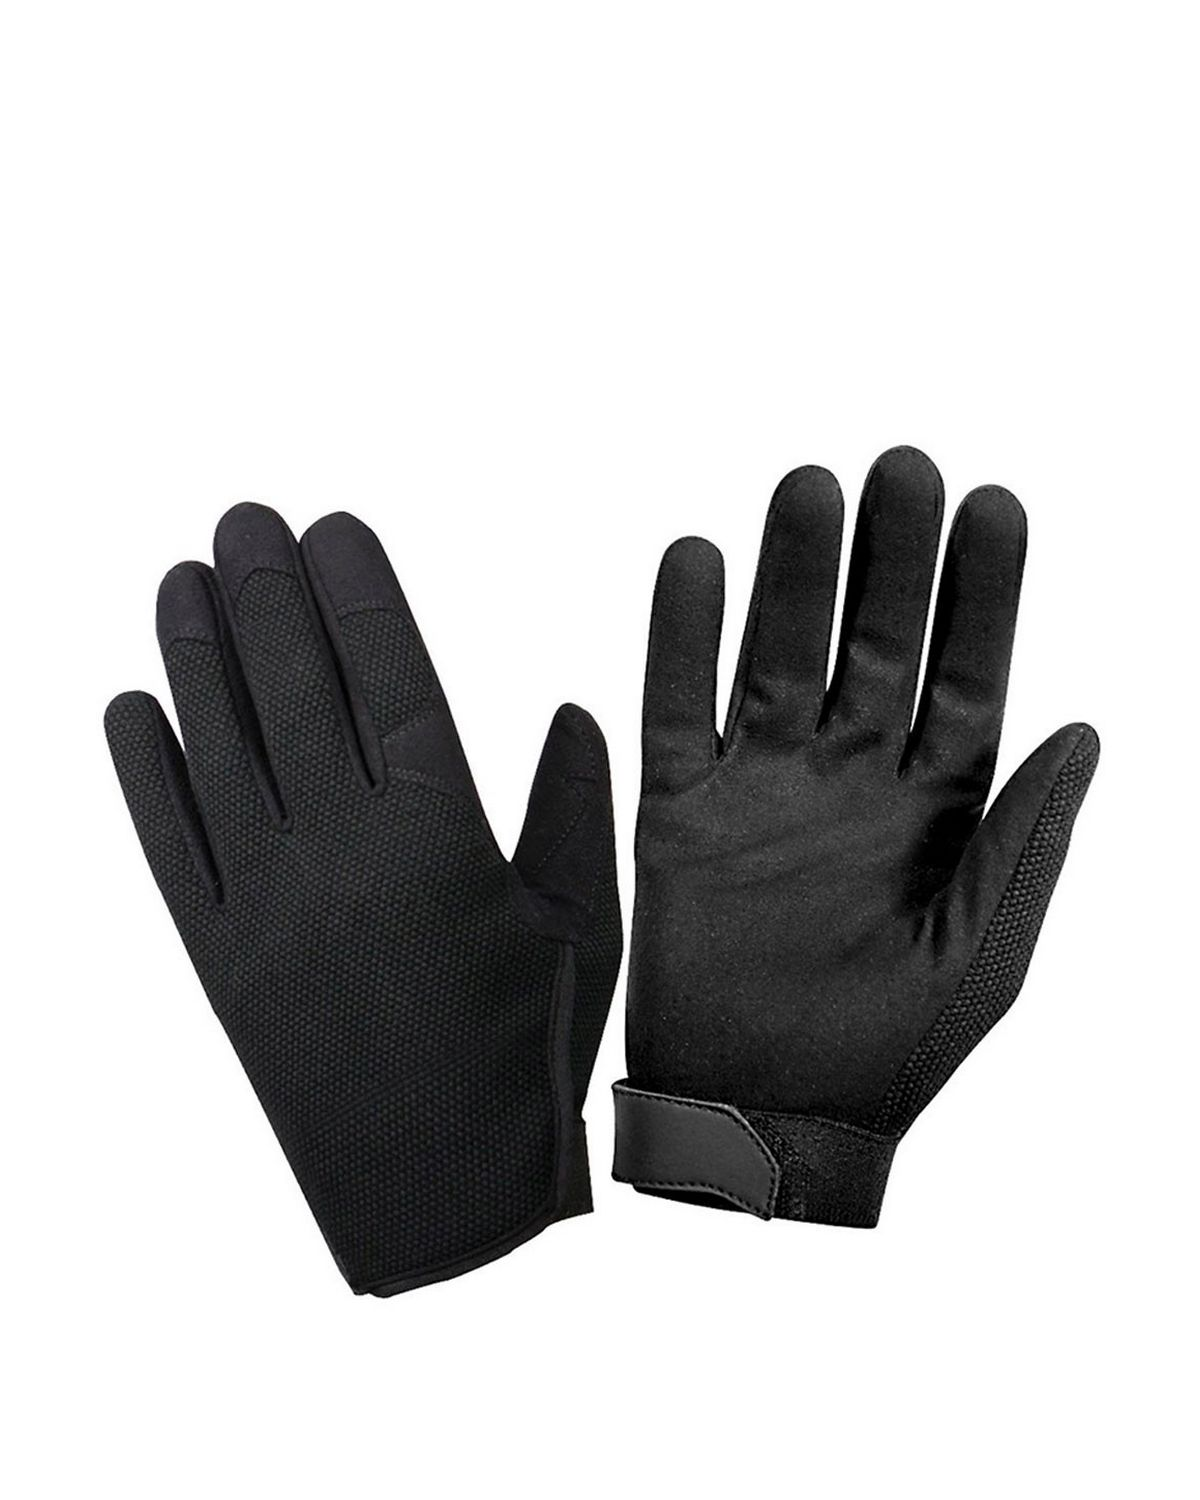 Rothco 3481 Ultra-light Gloves - Black - L 3481